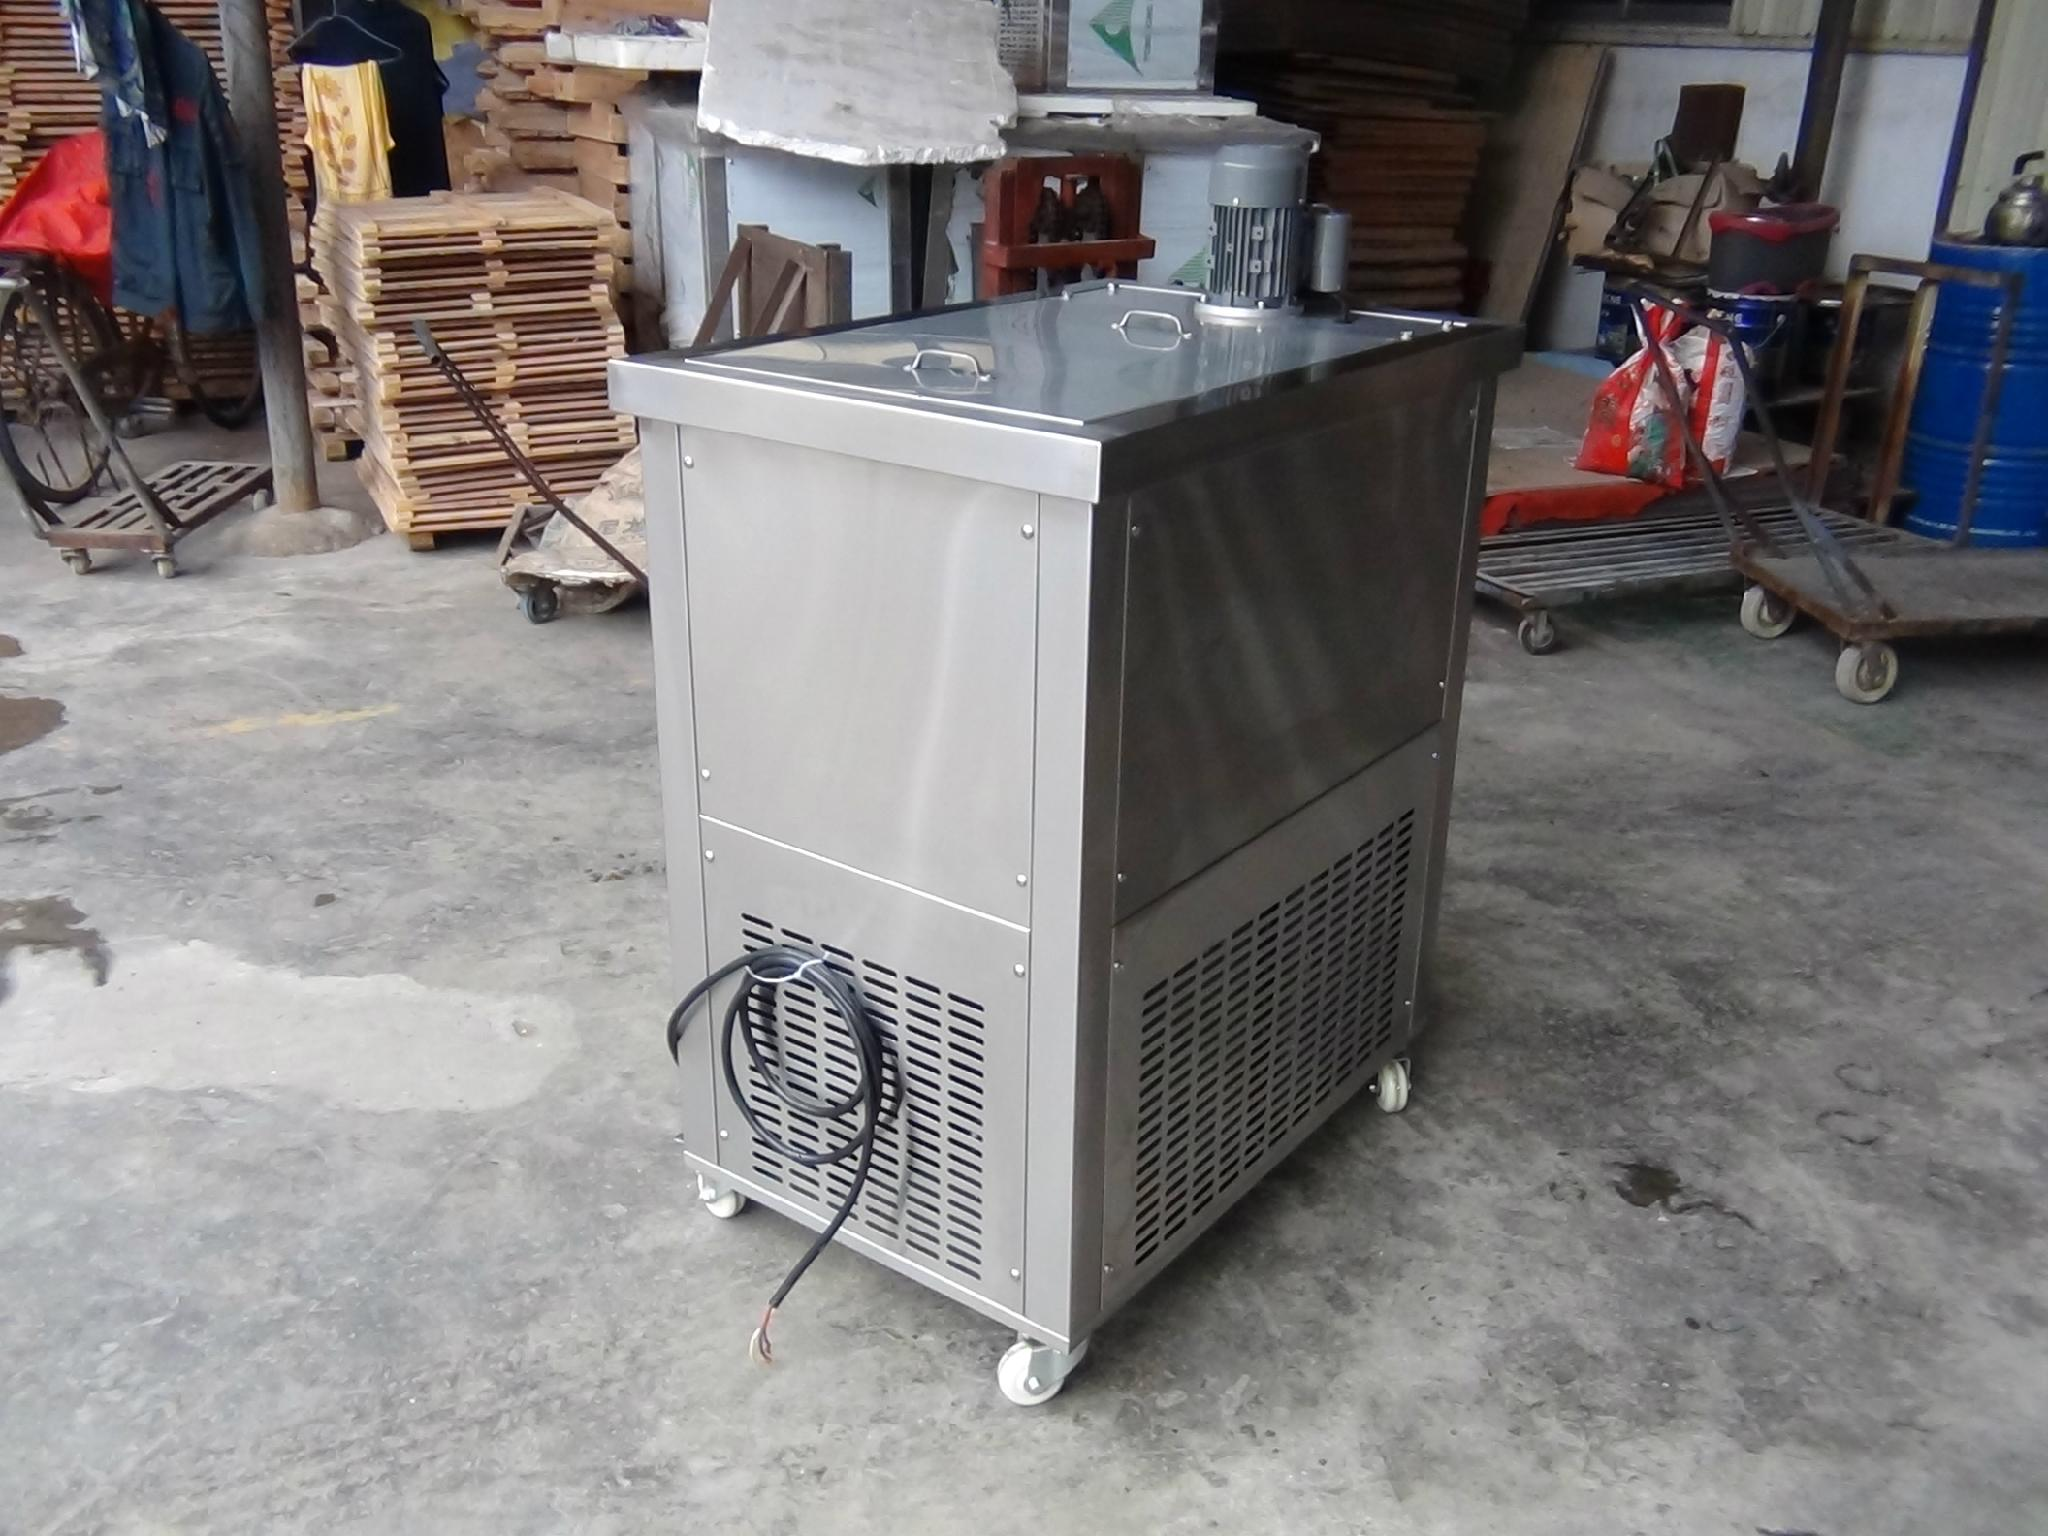 4 Mould Commercial Small Ice Lolly Machine Making Ice Popsicle Machine For Sale